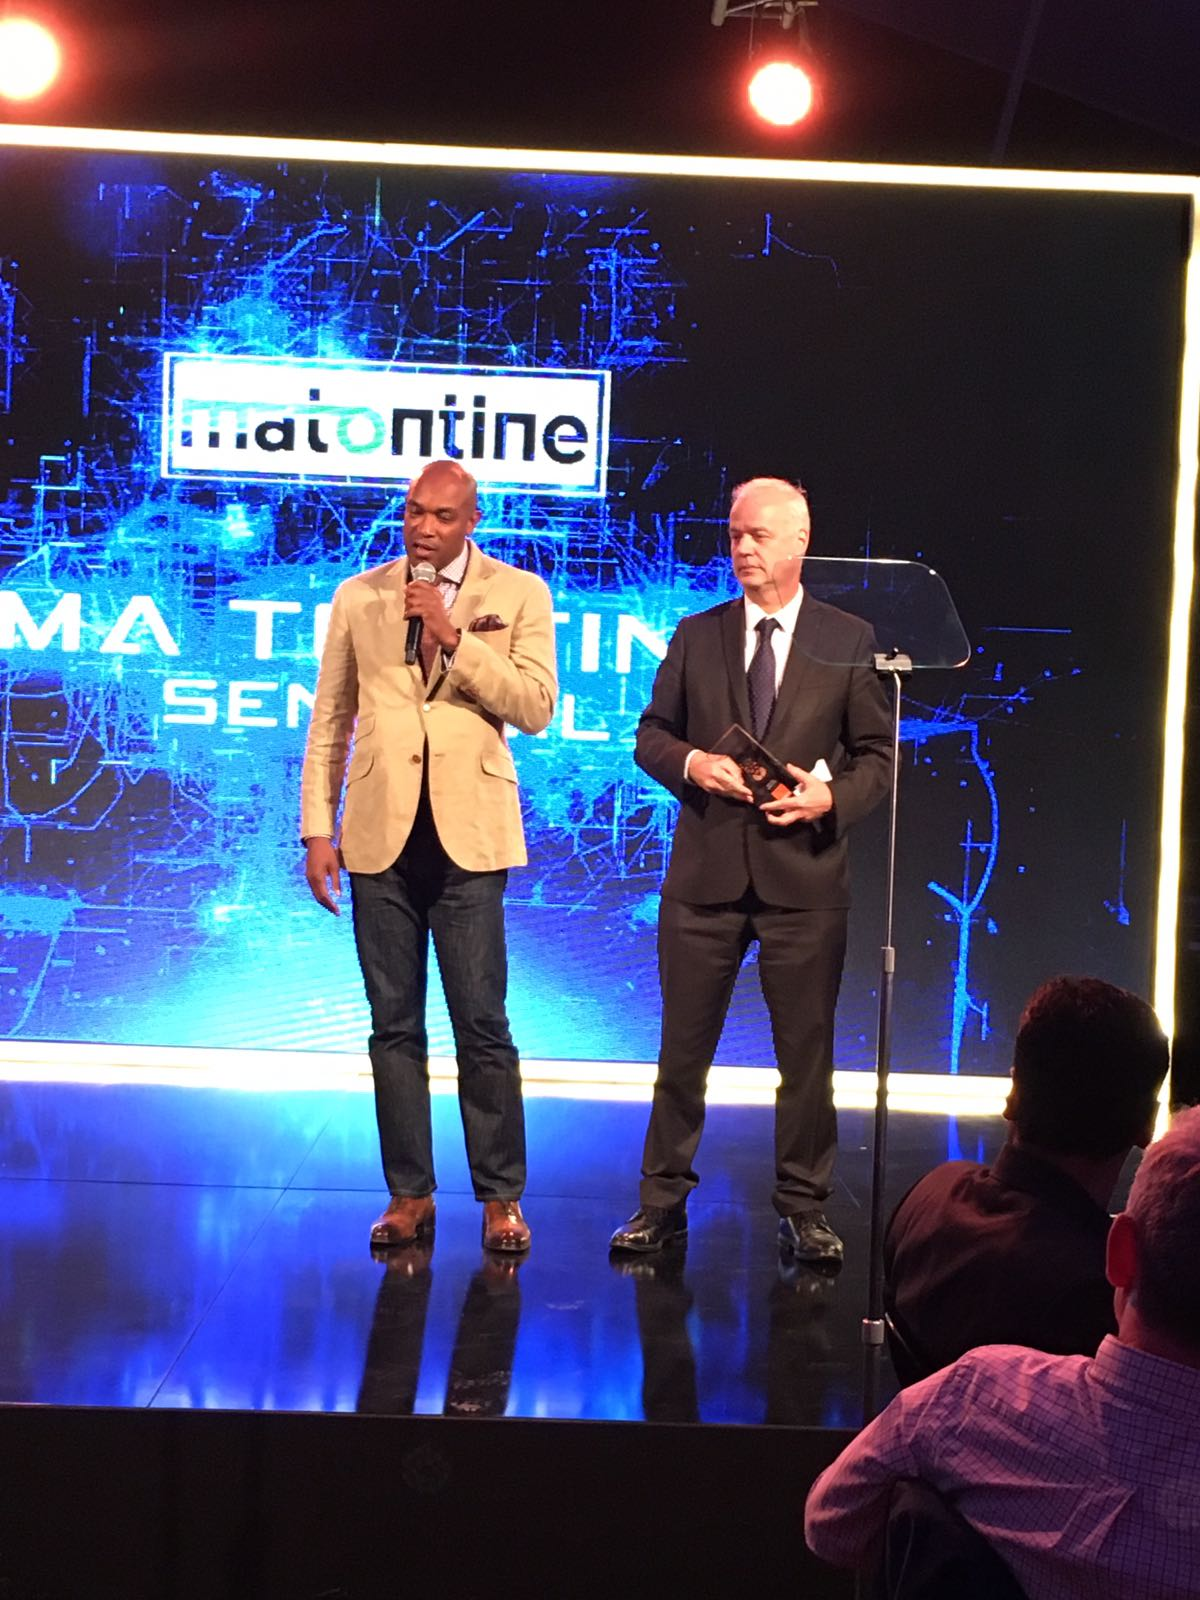 Announcing second prize winners Ma Tontine